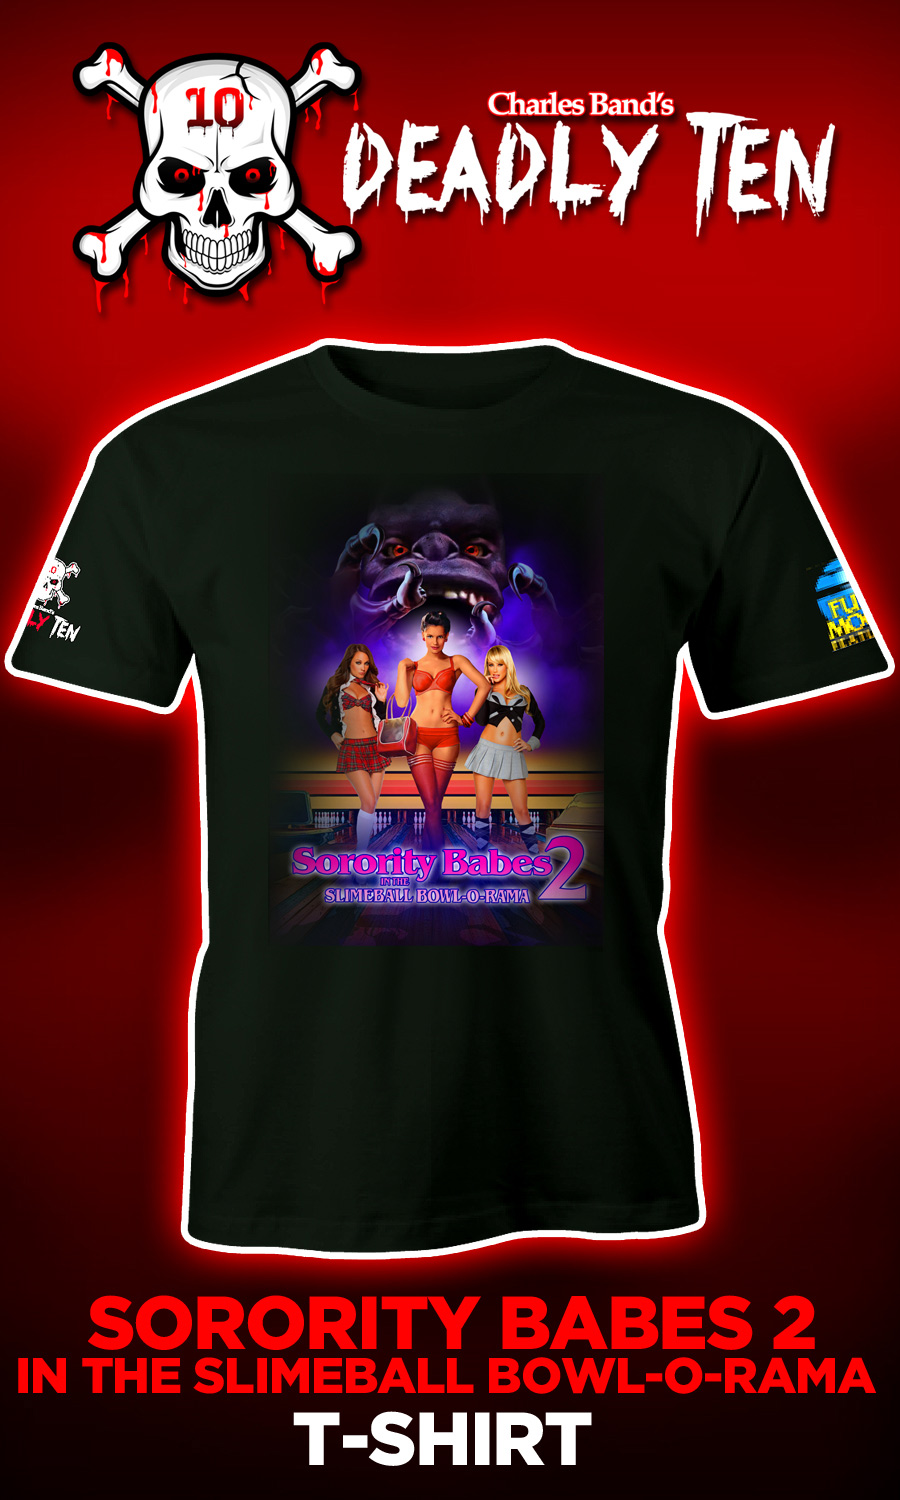 Sorority Babes In The Slimeball Bowl-O-Rama 2 Unisex T-shirt